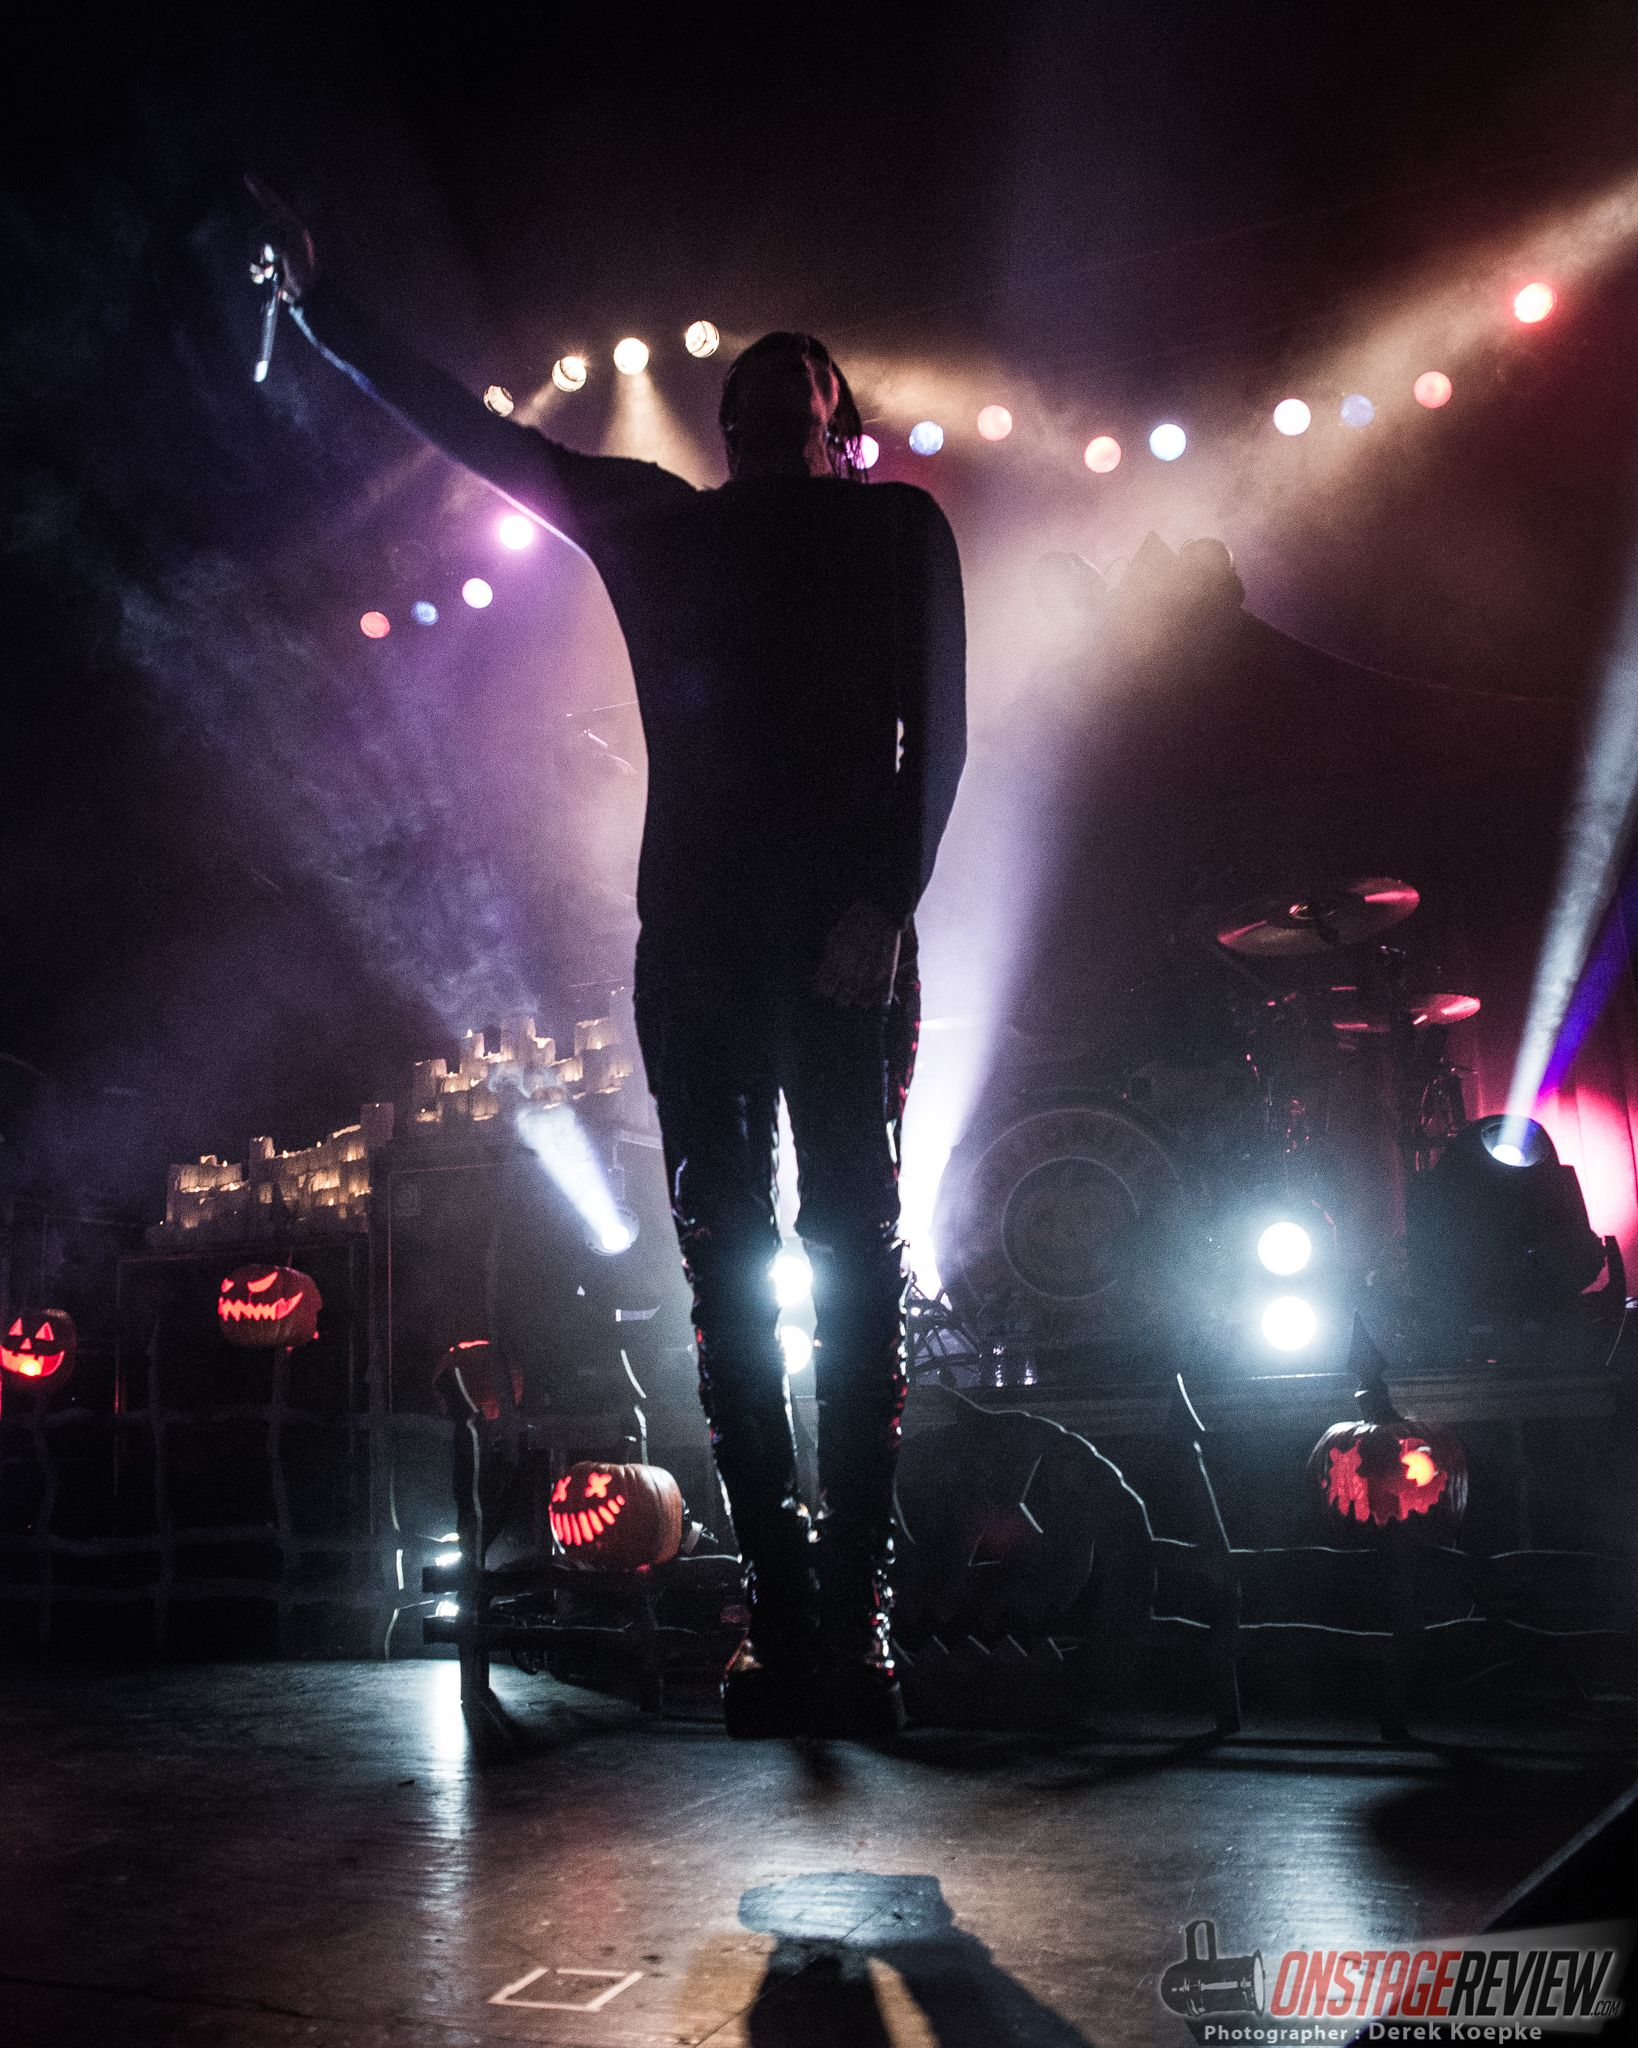 Pin by Ashley feshenko on motionless in white | Motionless ...